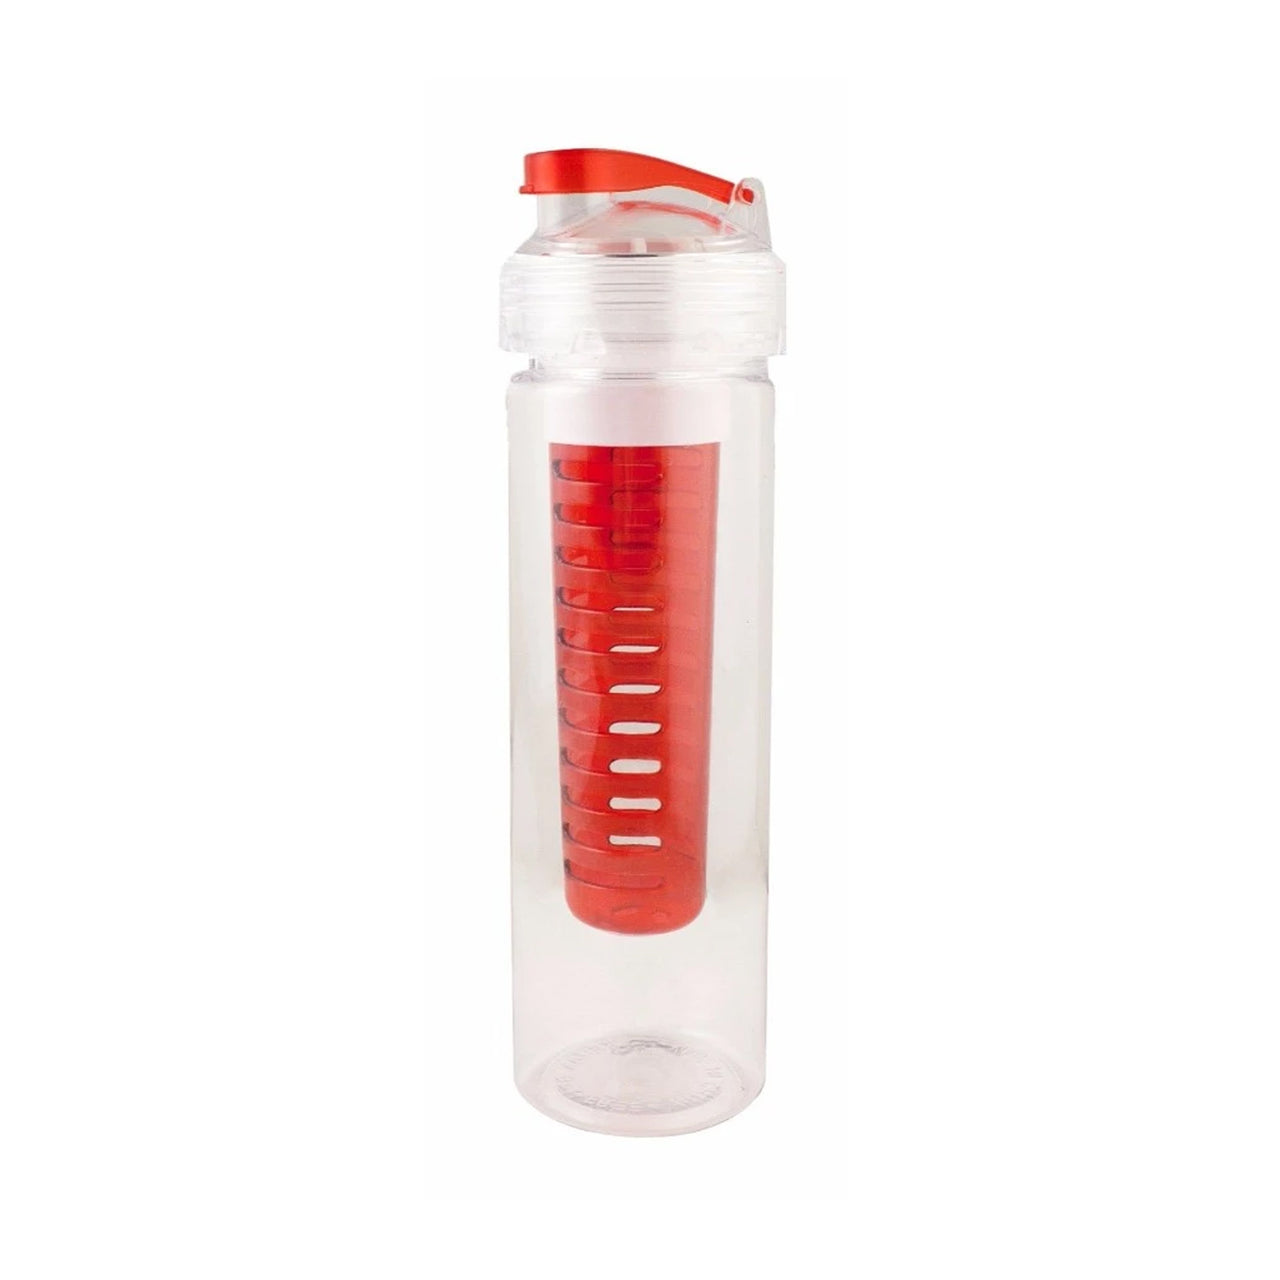 700ml Infuser Sipper Water Bottle - Red - EMARTBUY